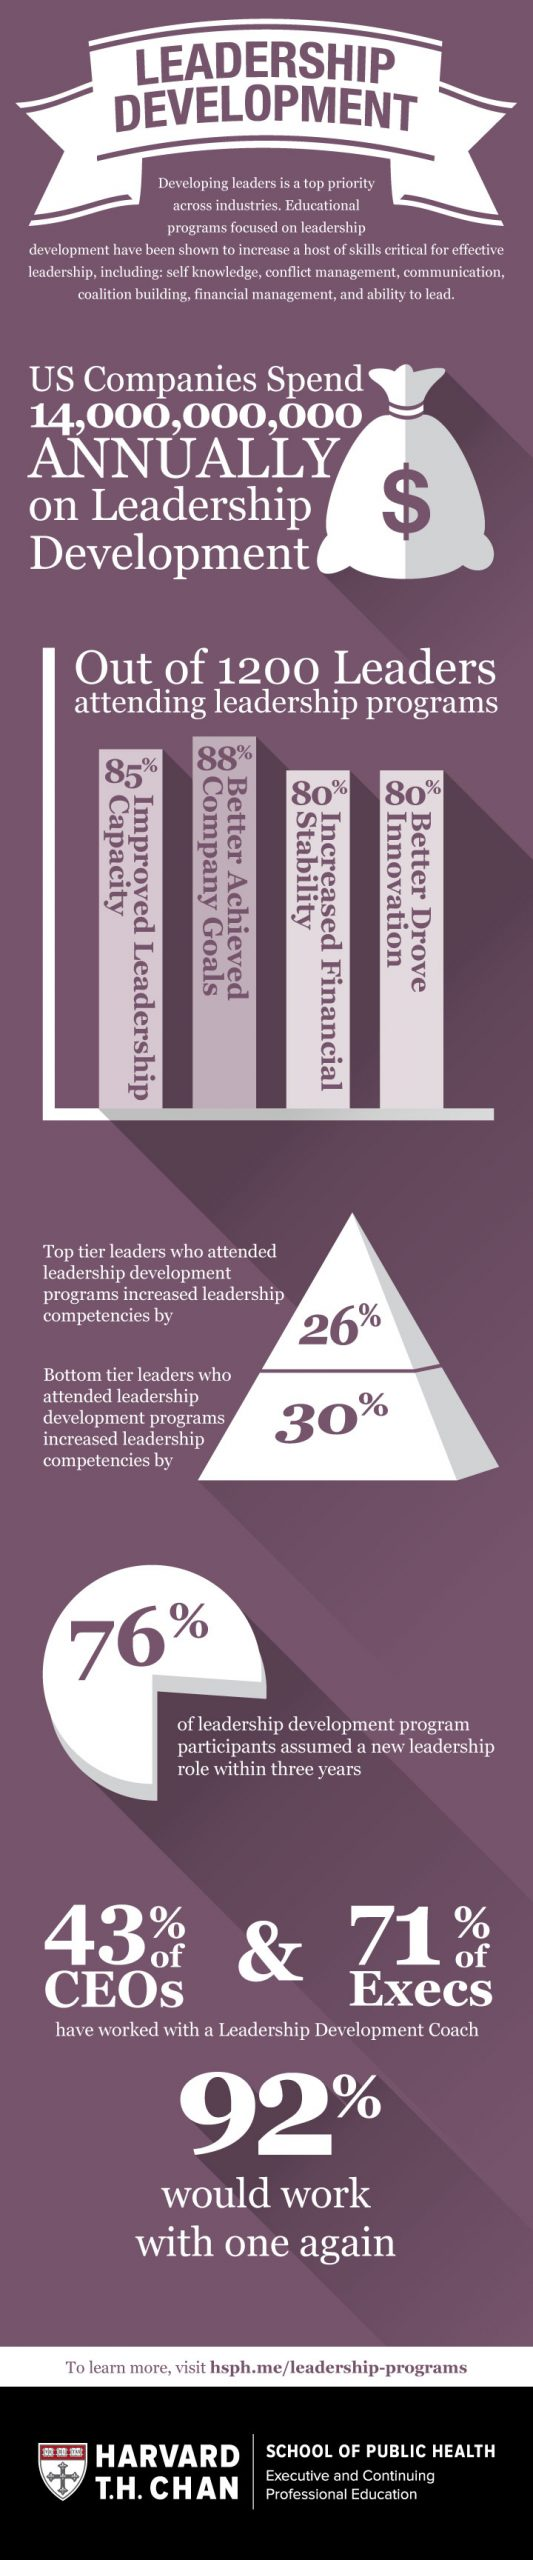 Leadership Development Infographic Image